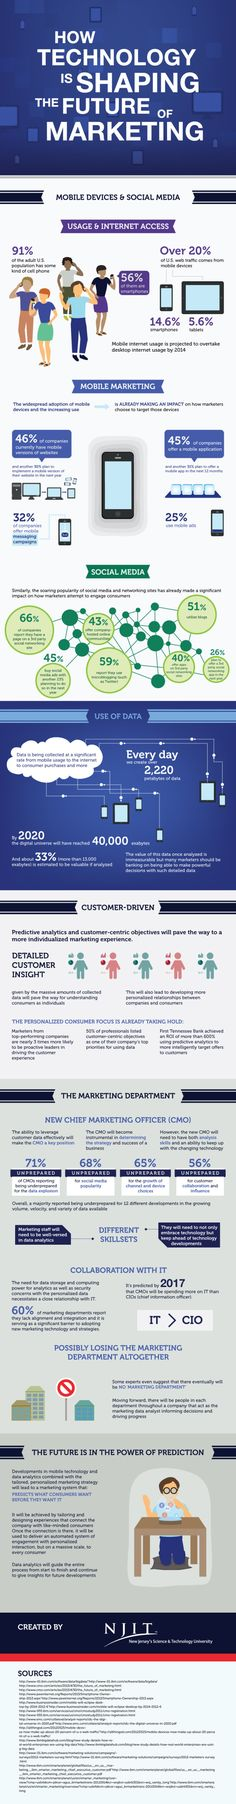 "DIGITAL MARKETING - ""Infographic: How Technology is Shaping the Future of Marketing #marketing #future."""